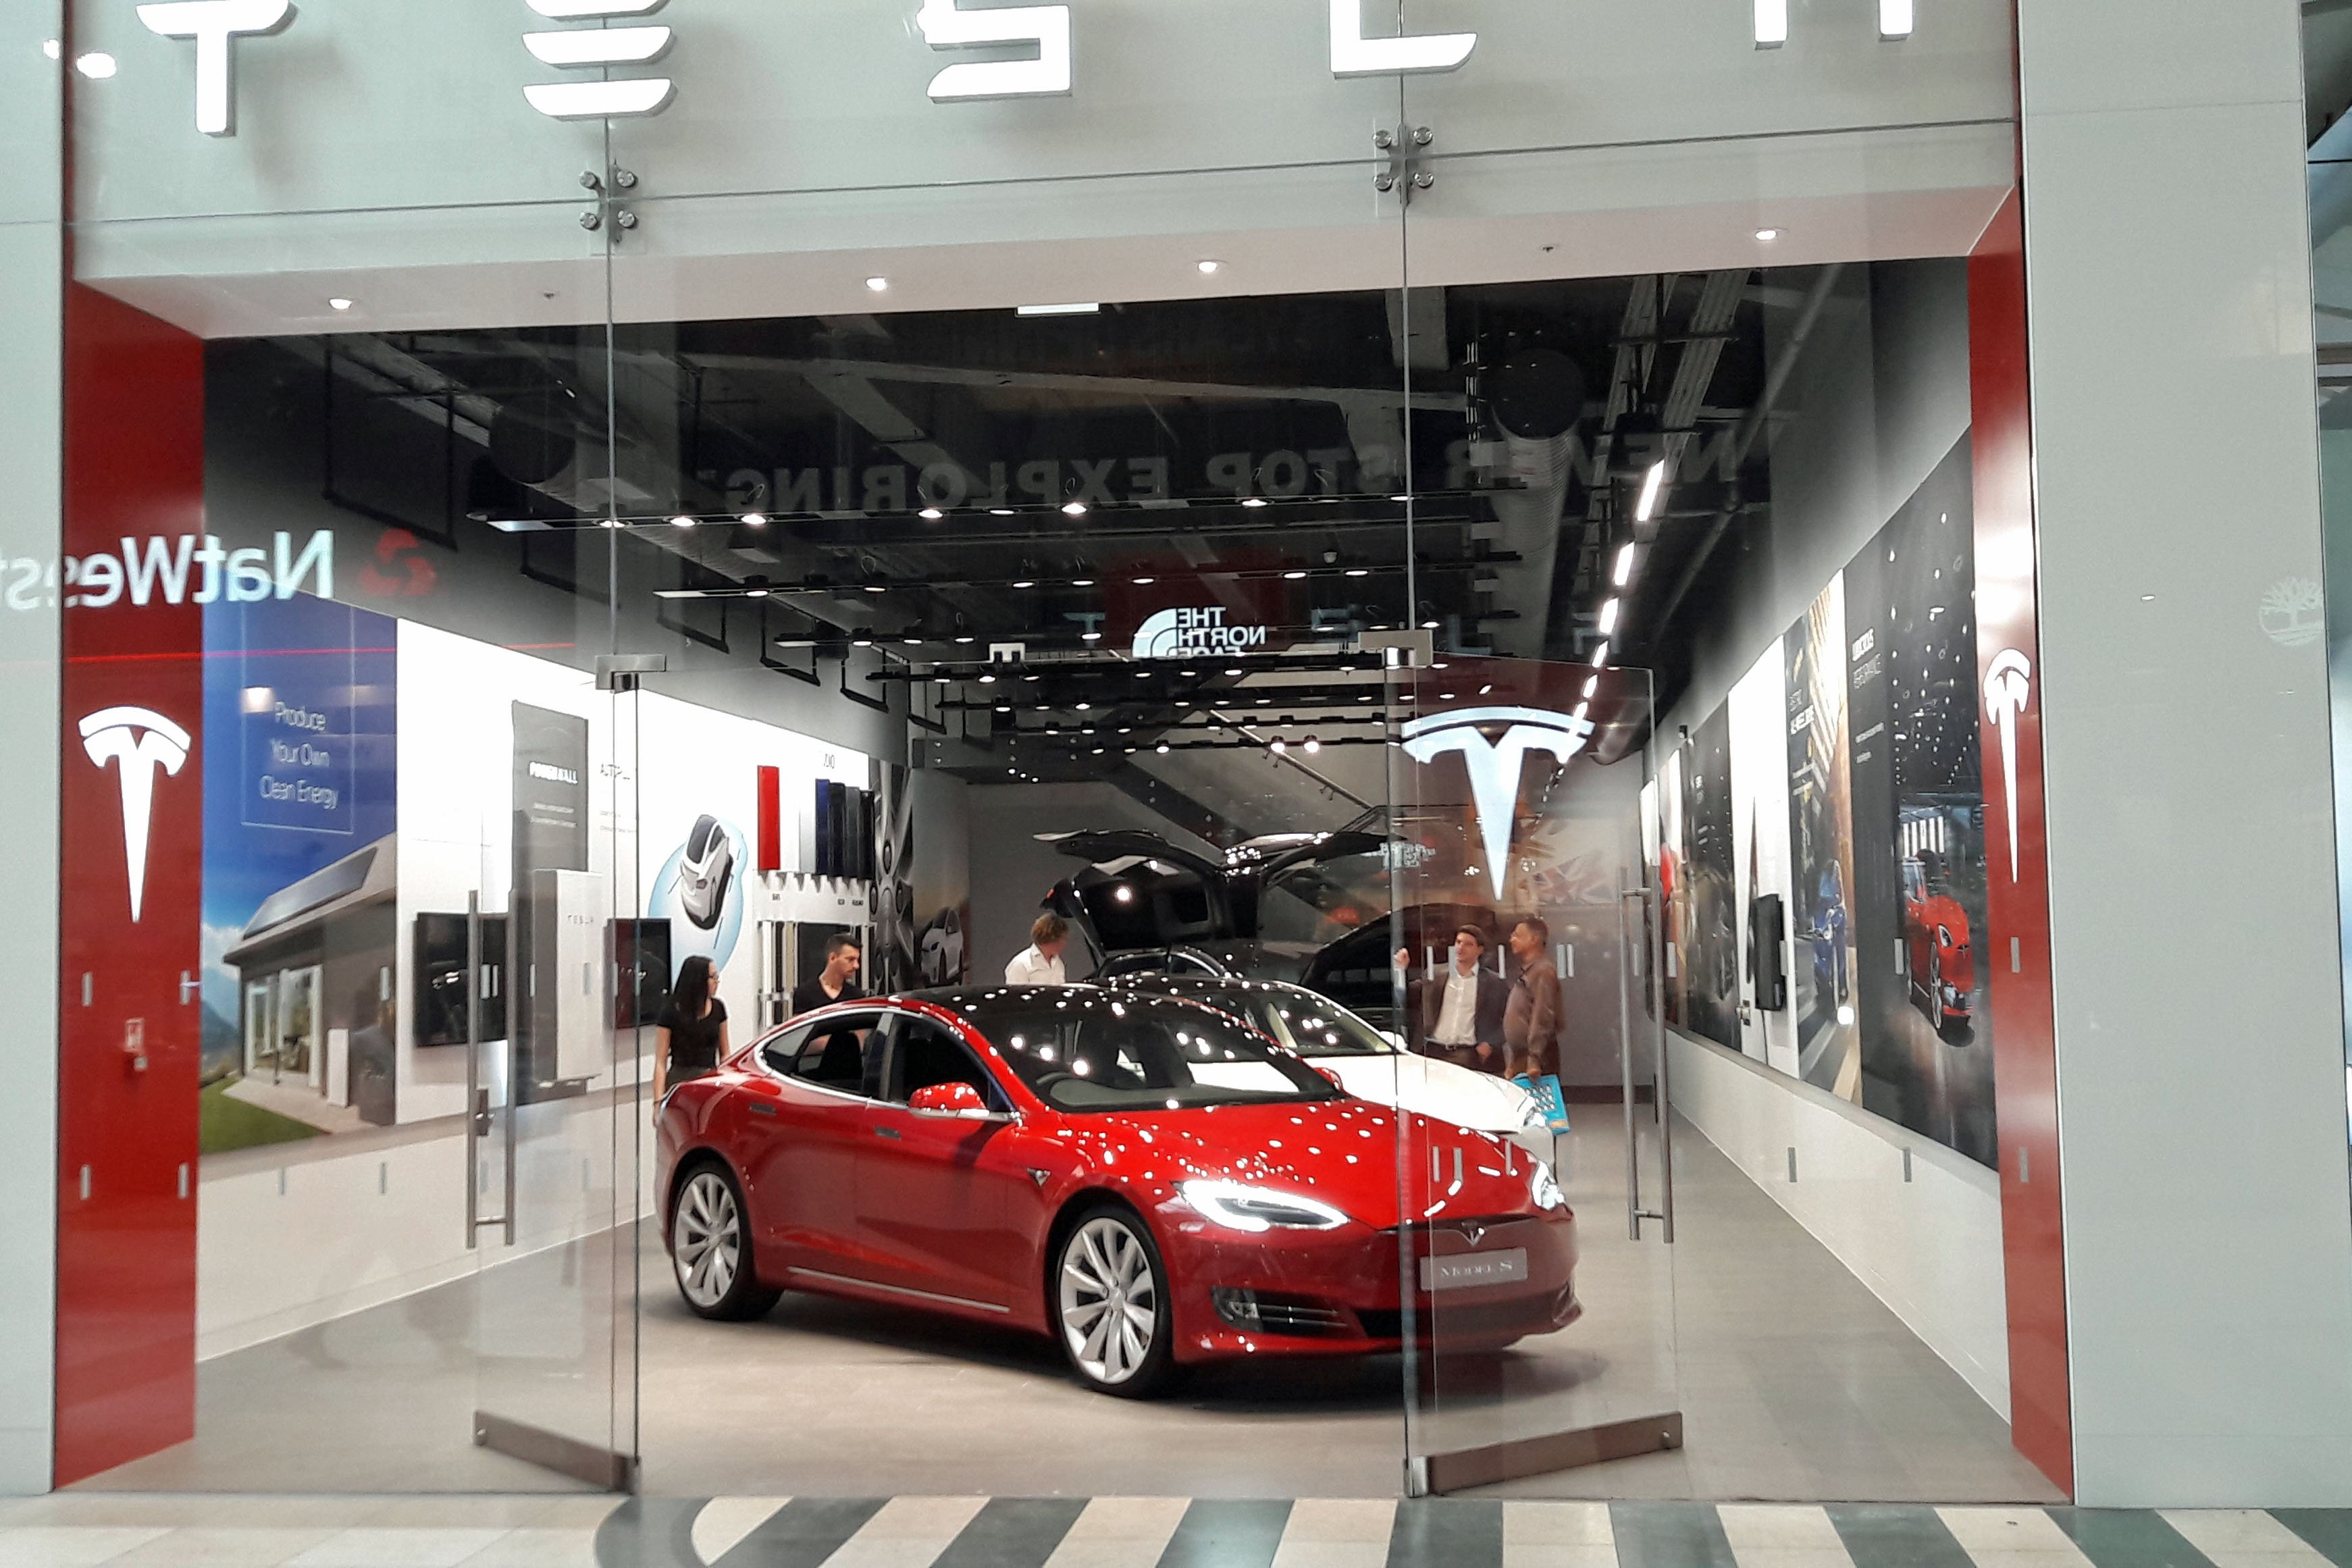 20170718-135329_Tesla-ModelS_Showroom_TLarkum_c